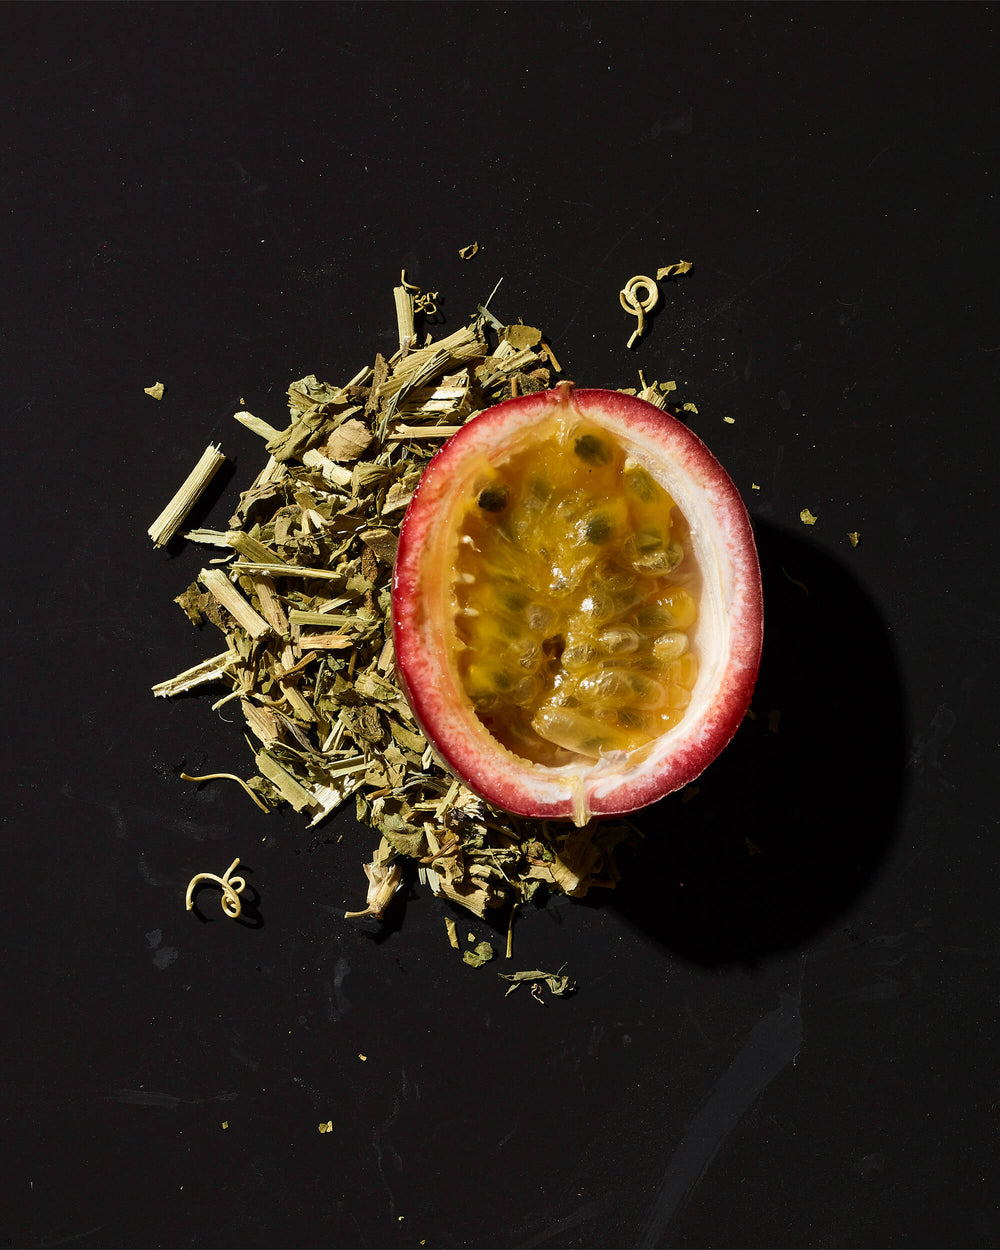 Passionflower Extract